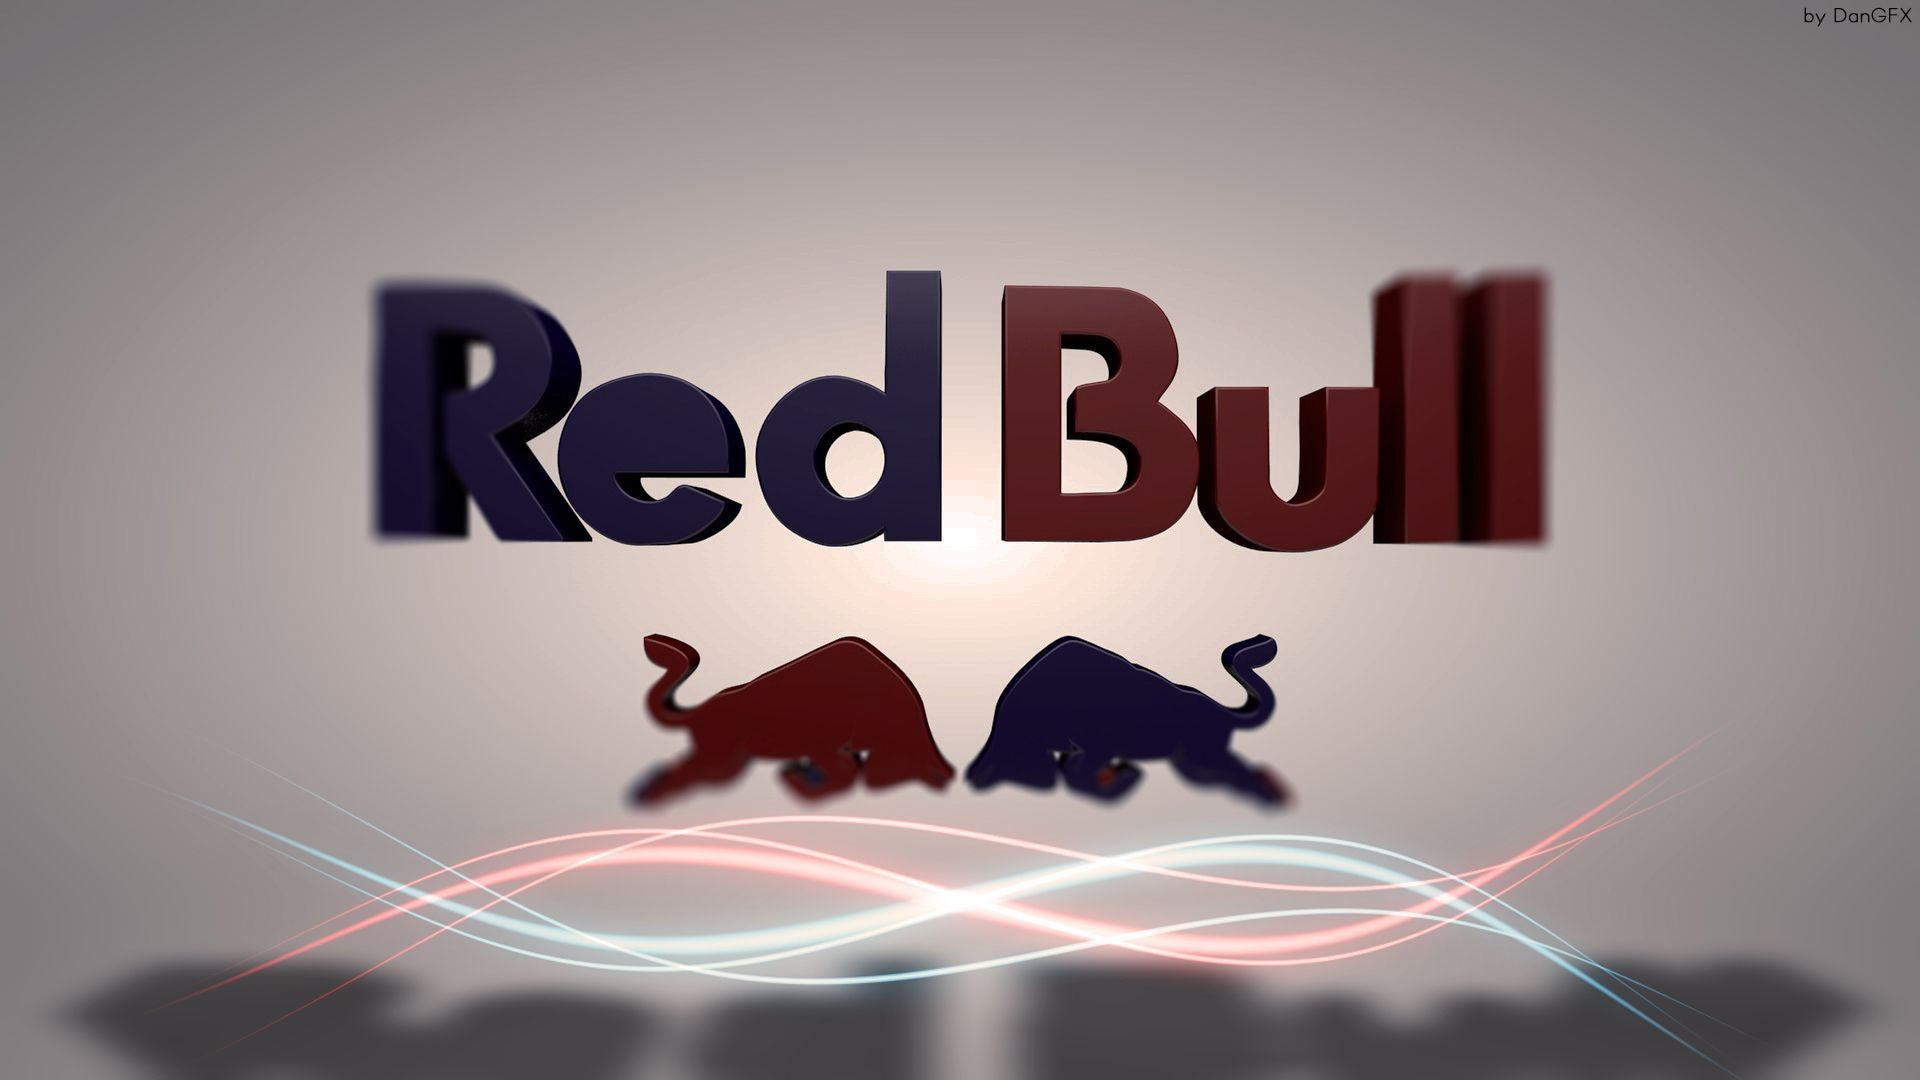 1920x1080 Awesome Red Bull Wallpaper